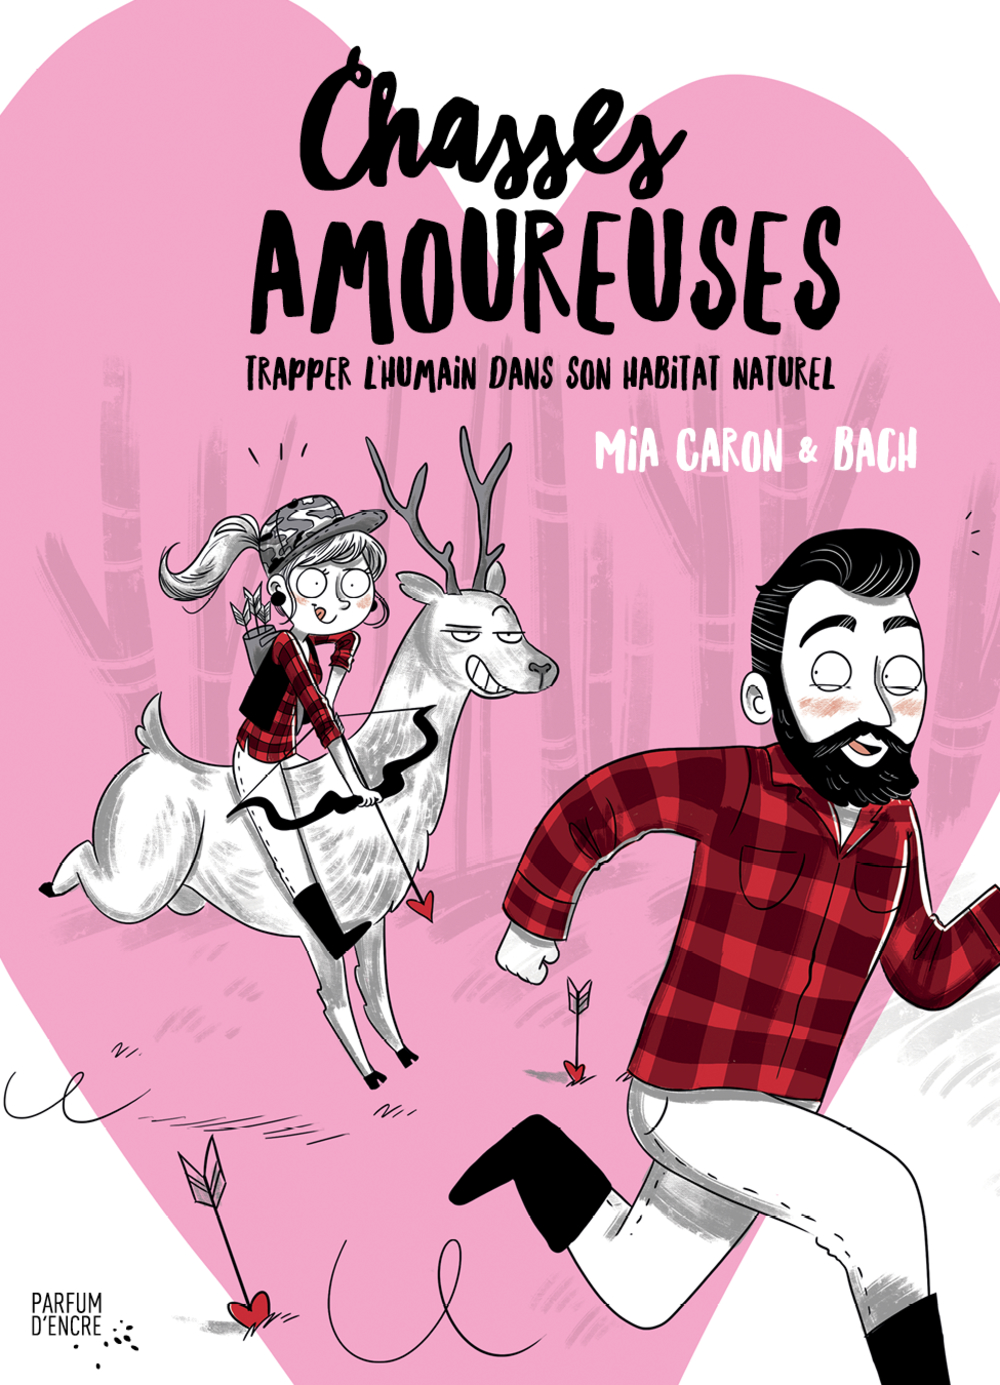 Chasses amoureuses